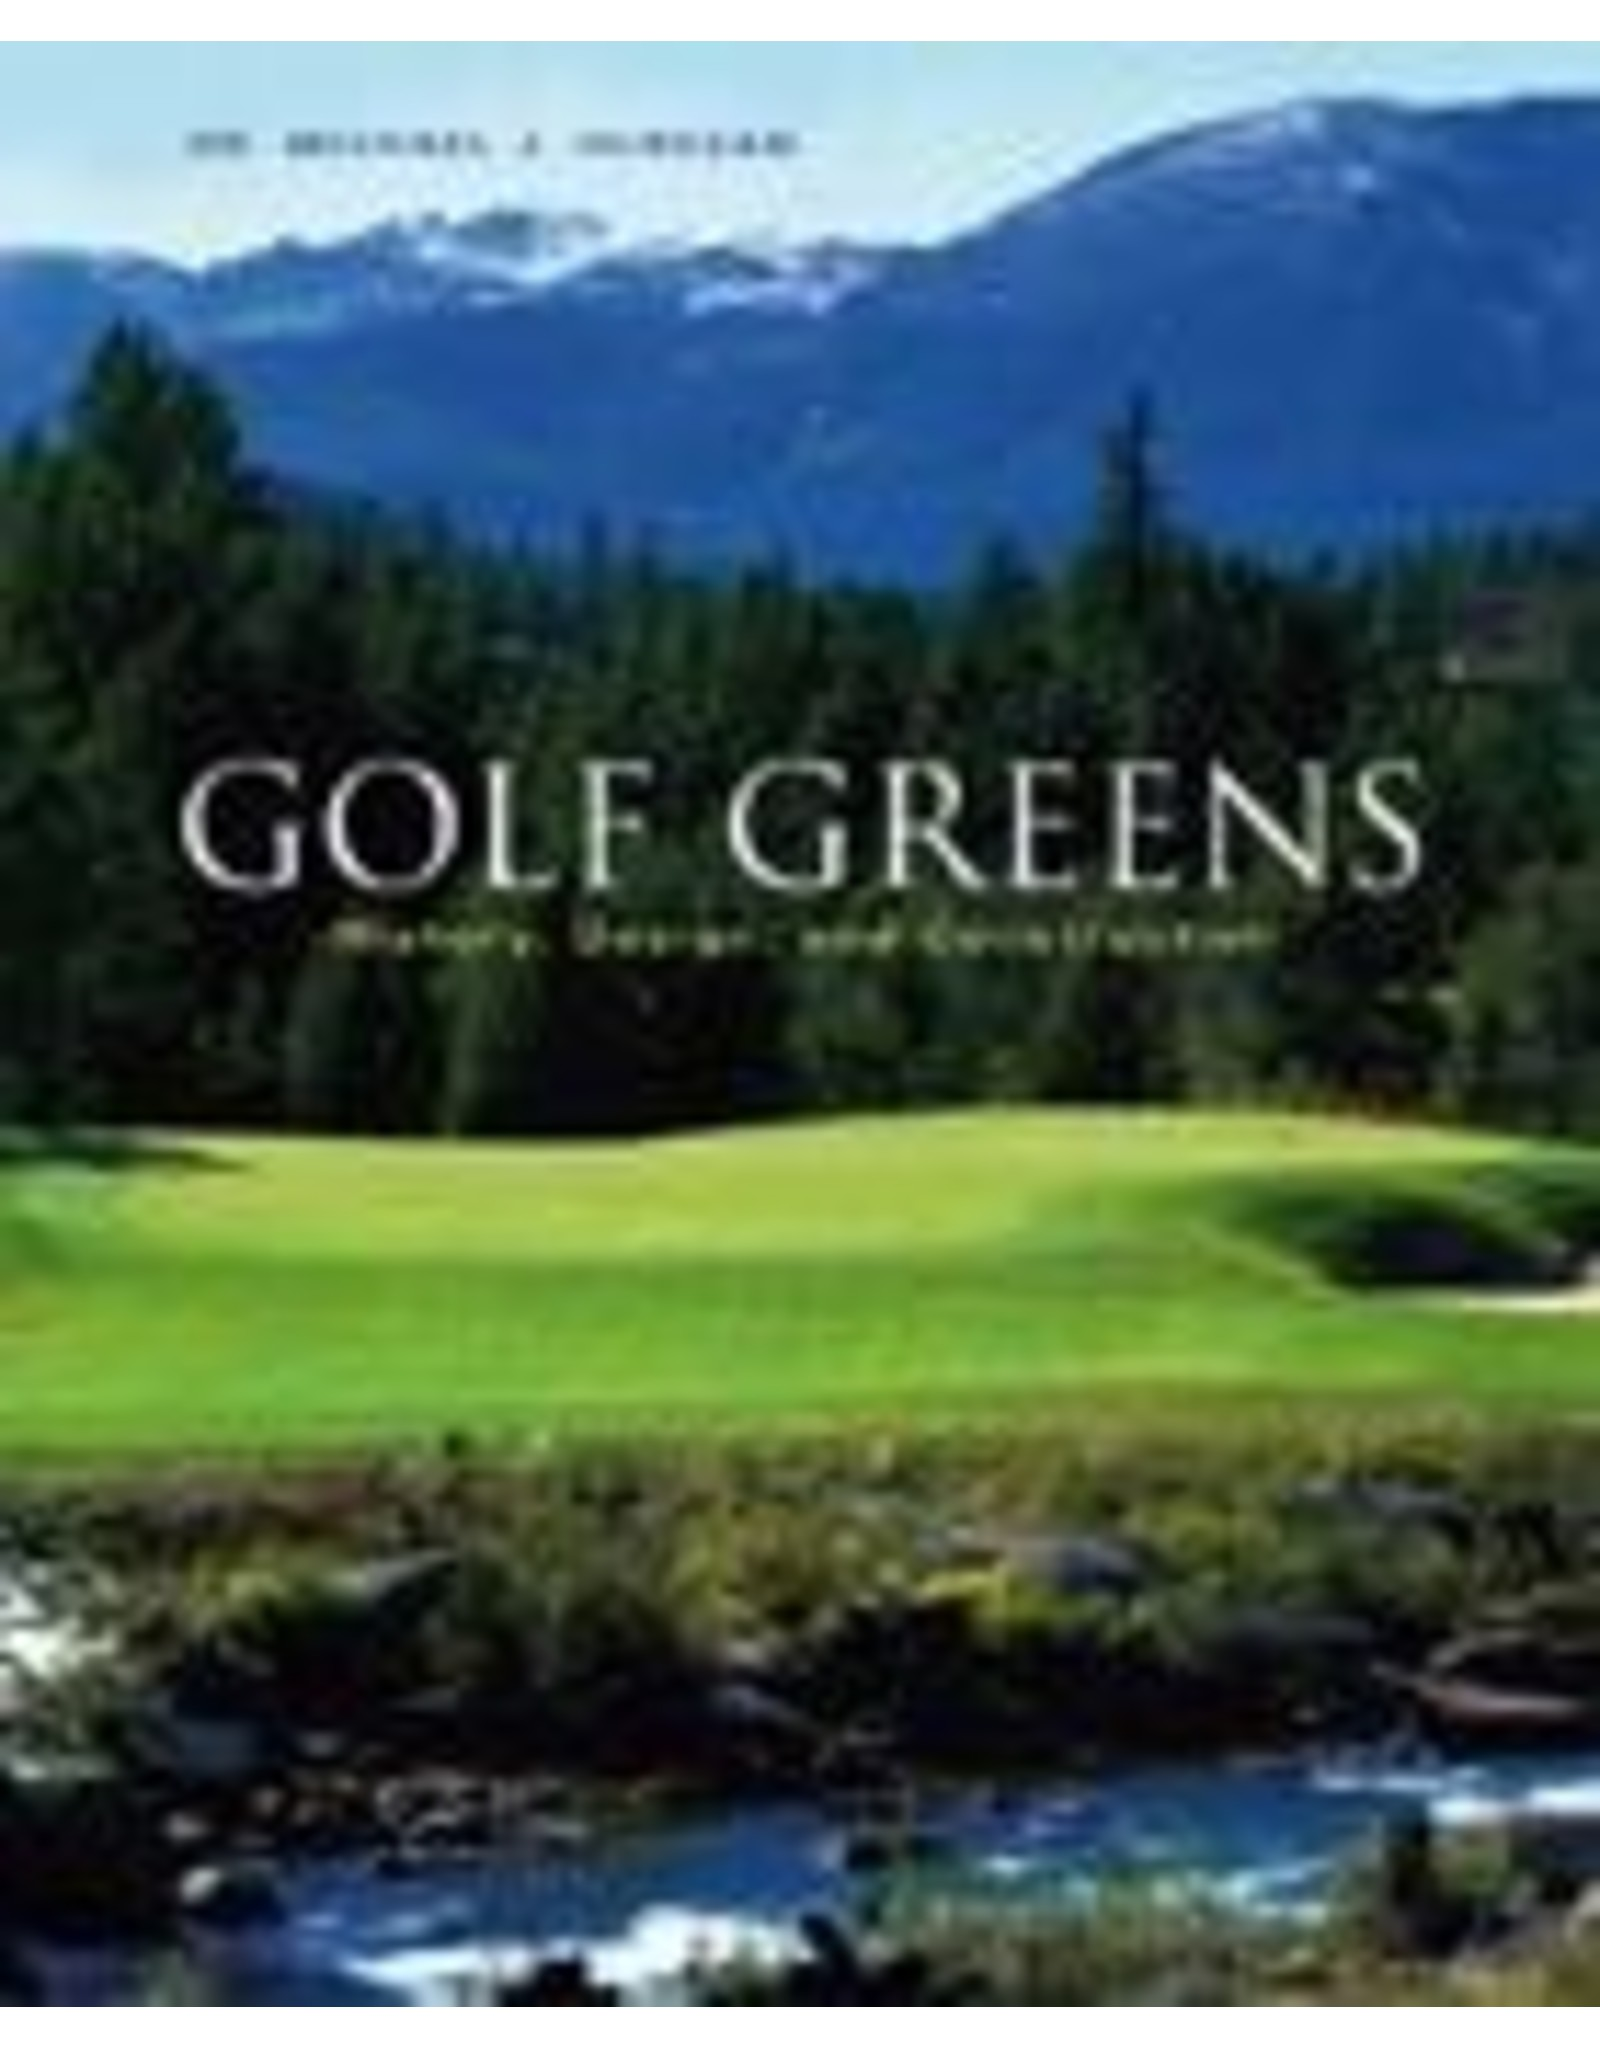 Golf Greens: History, Design, and Construction